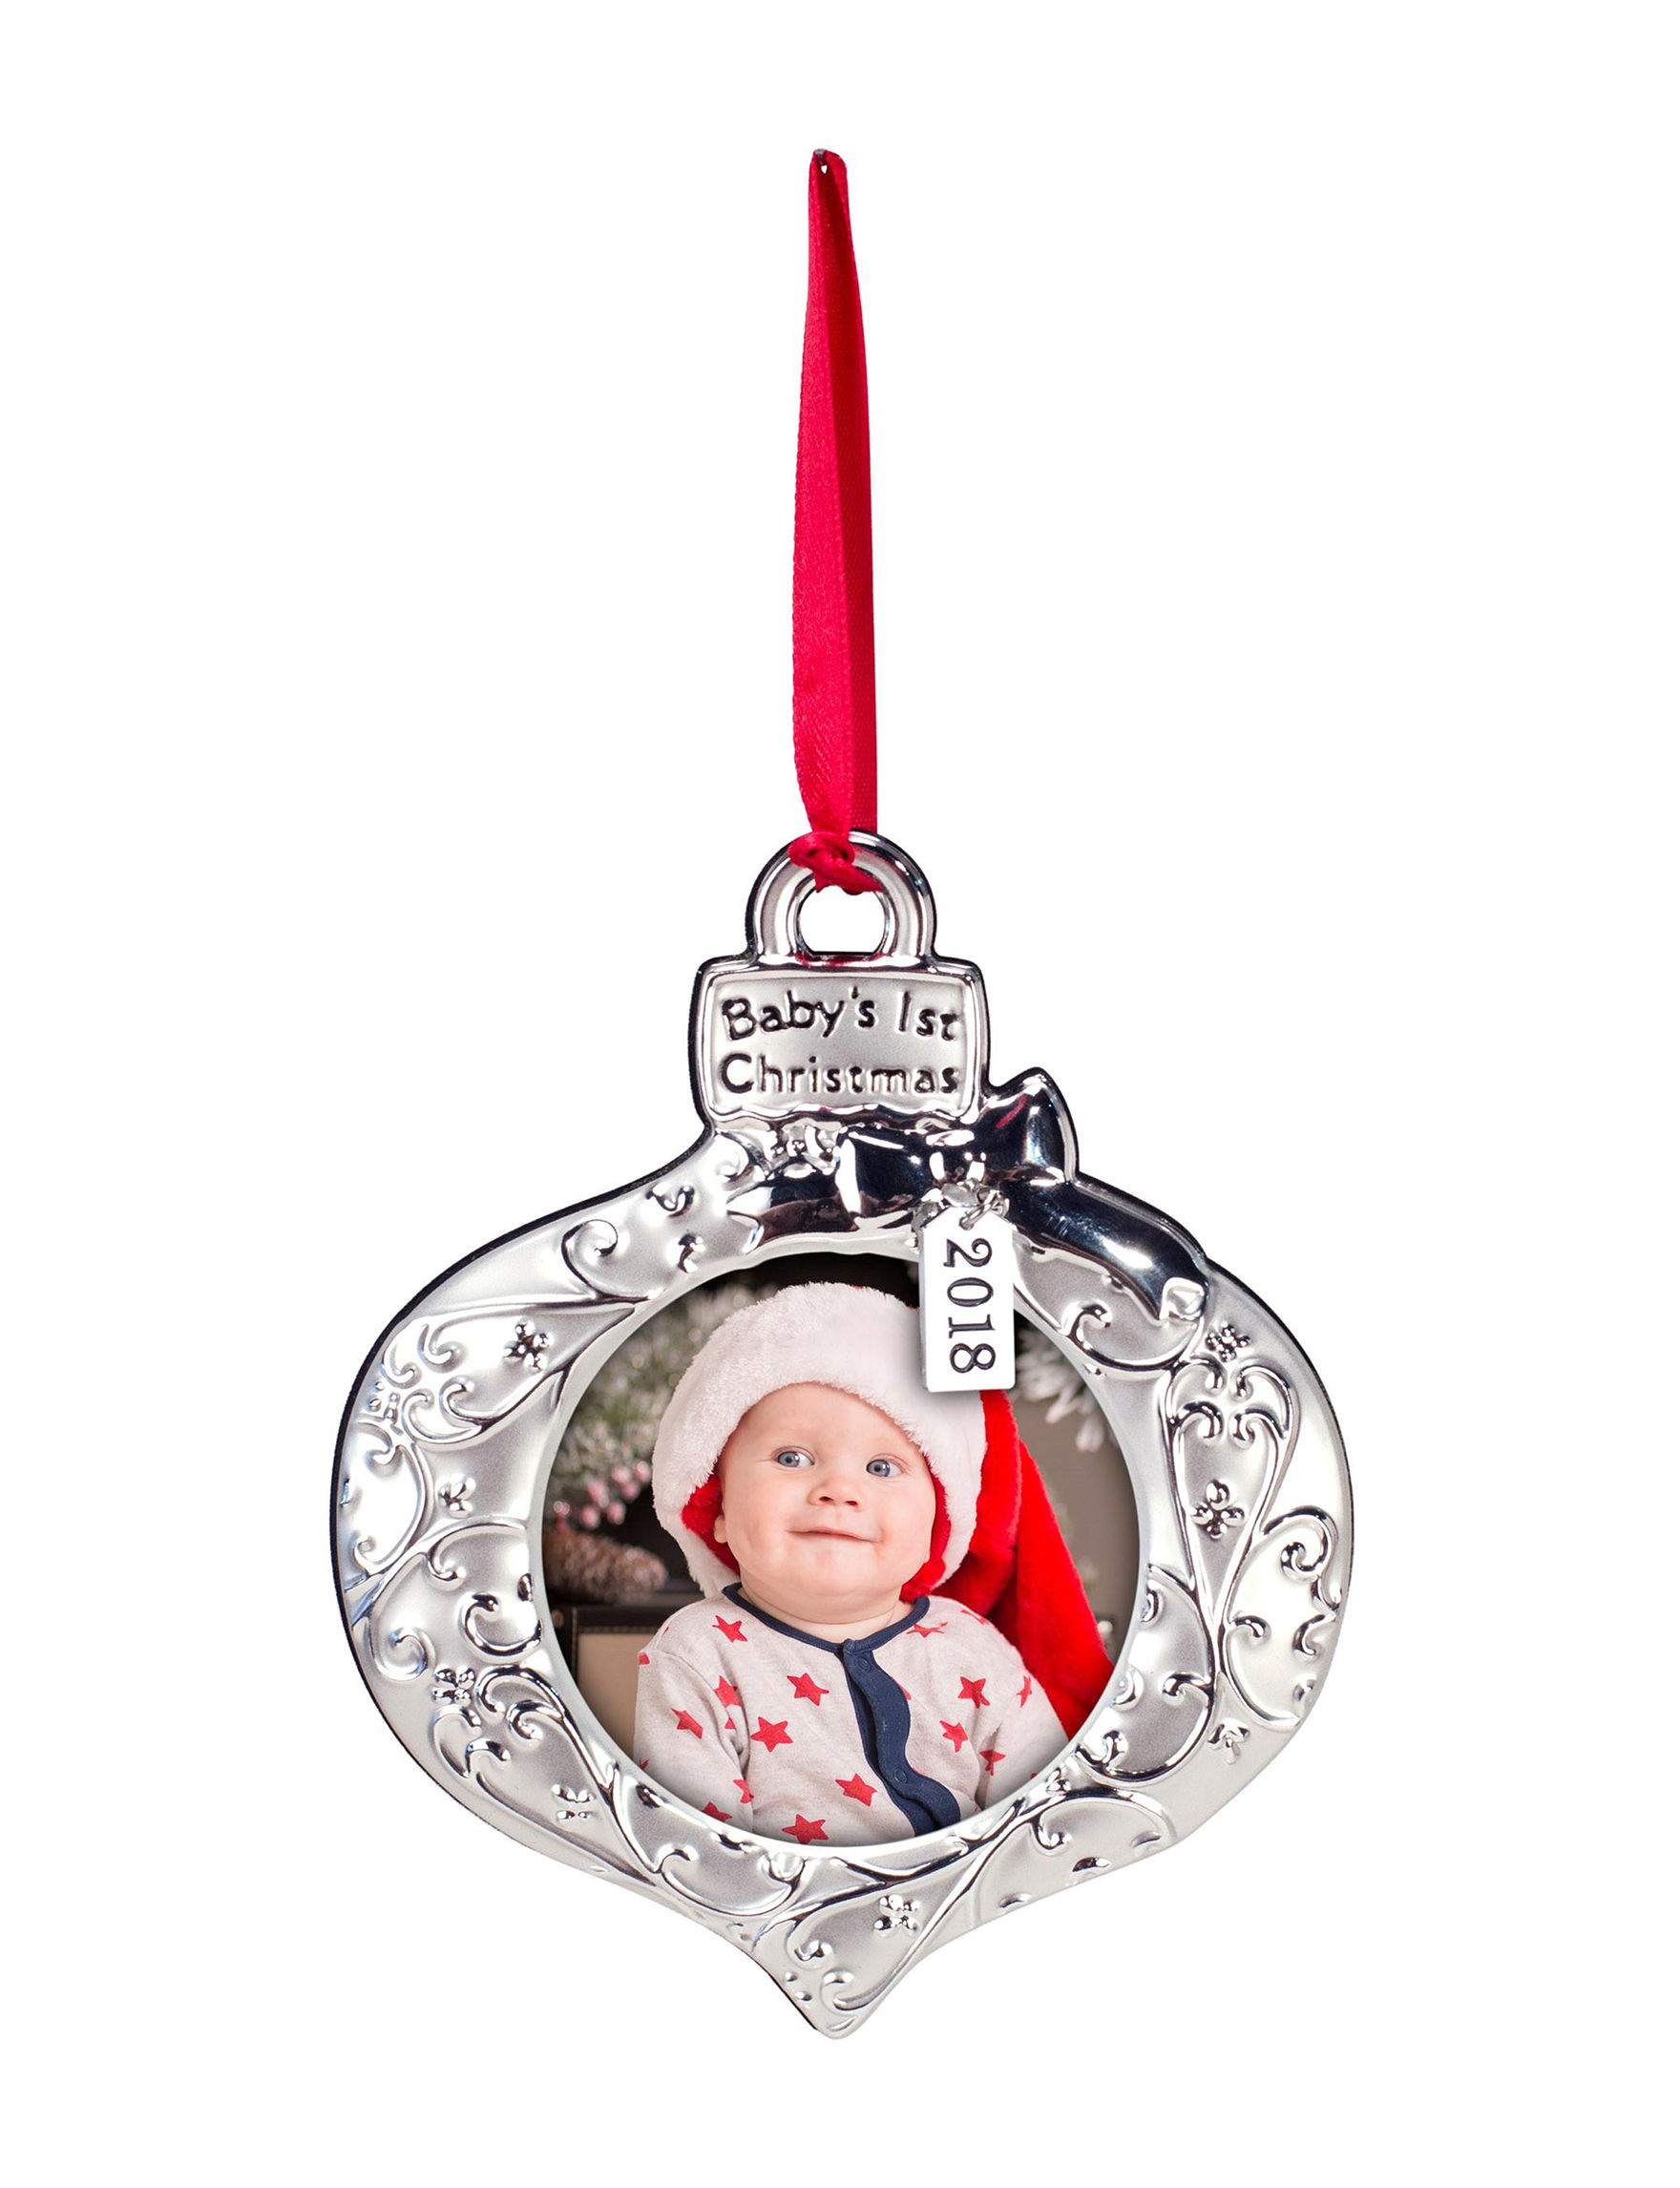 Malden Silver Ornaments Frames & Shadow Boxes Holiday Decor